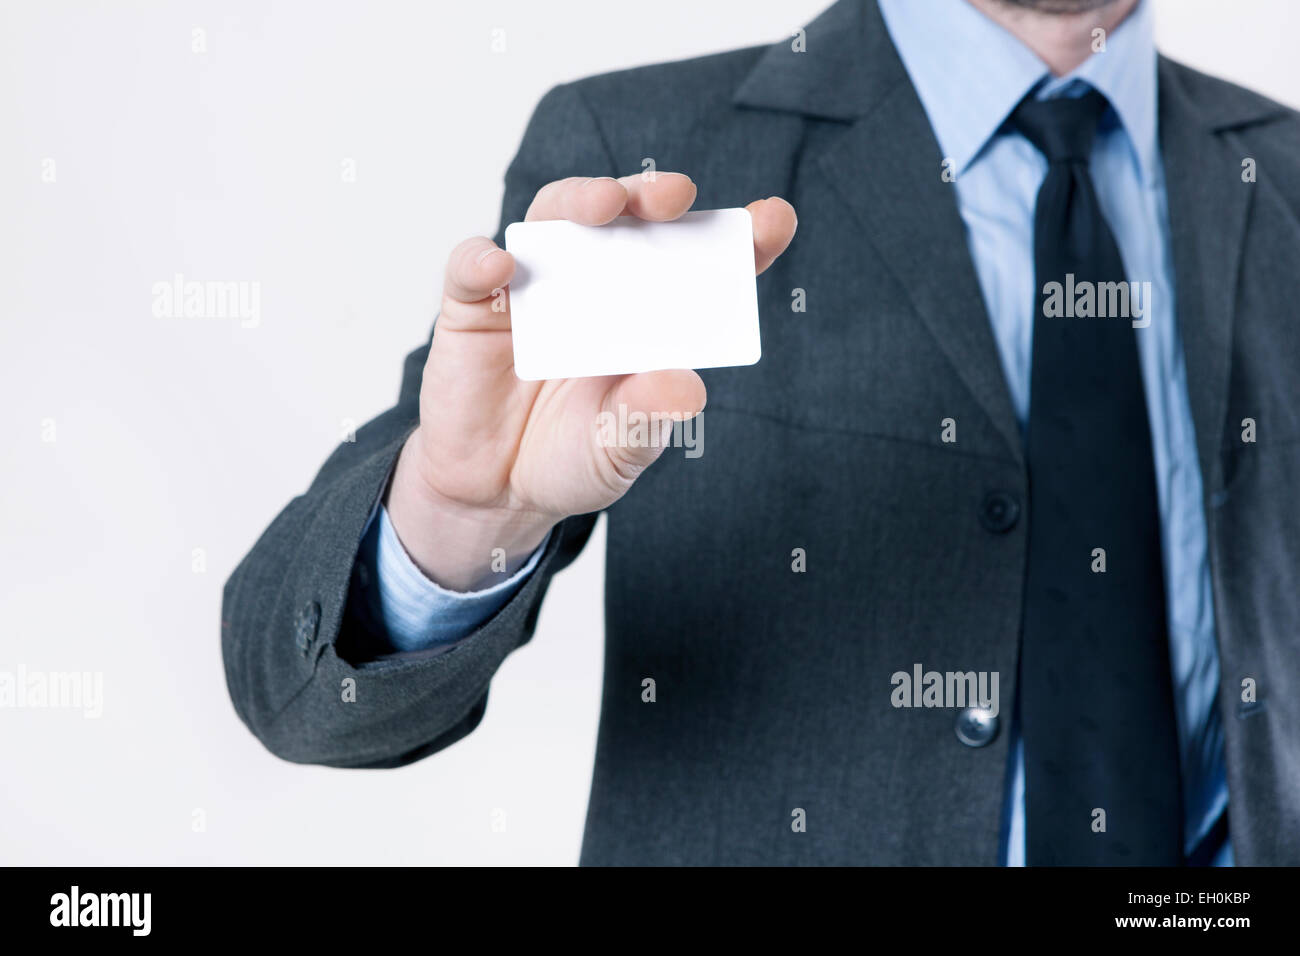 Man in suit and tie holds a white business card in hand no face man in suit and tie holds a white business card in hand no face magicingreecefo Choice Image